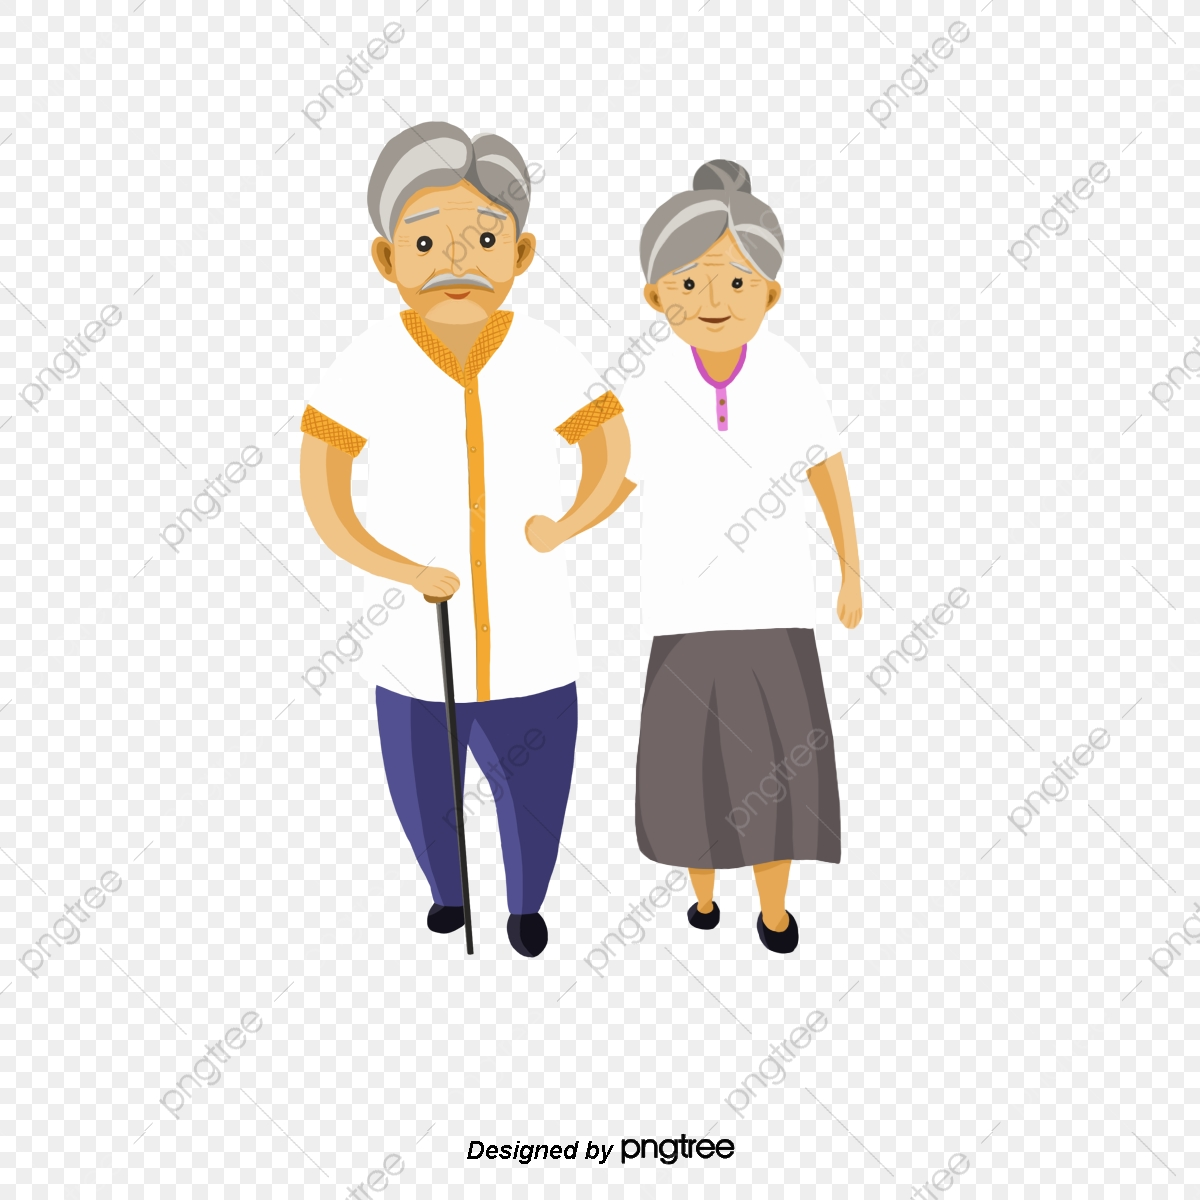 A Pair Of Old People, People Clipart, Old Couple, The Elderly PNG.